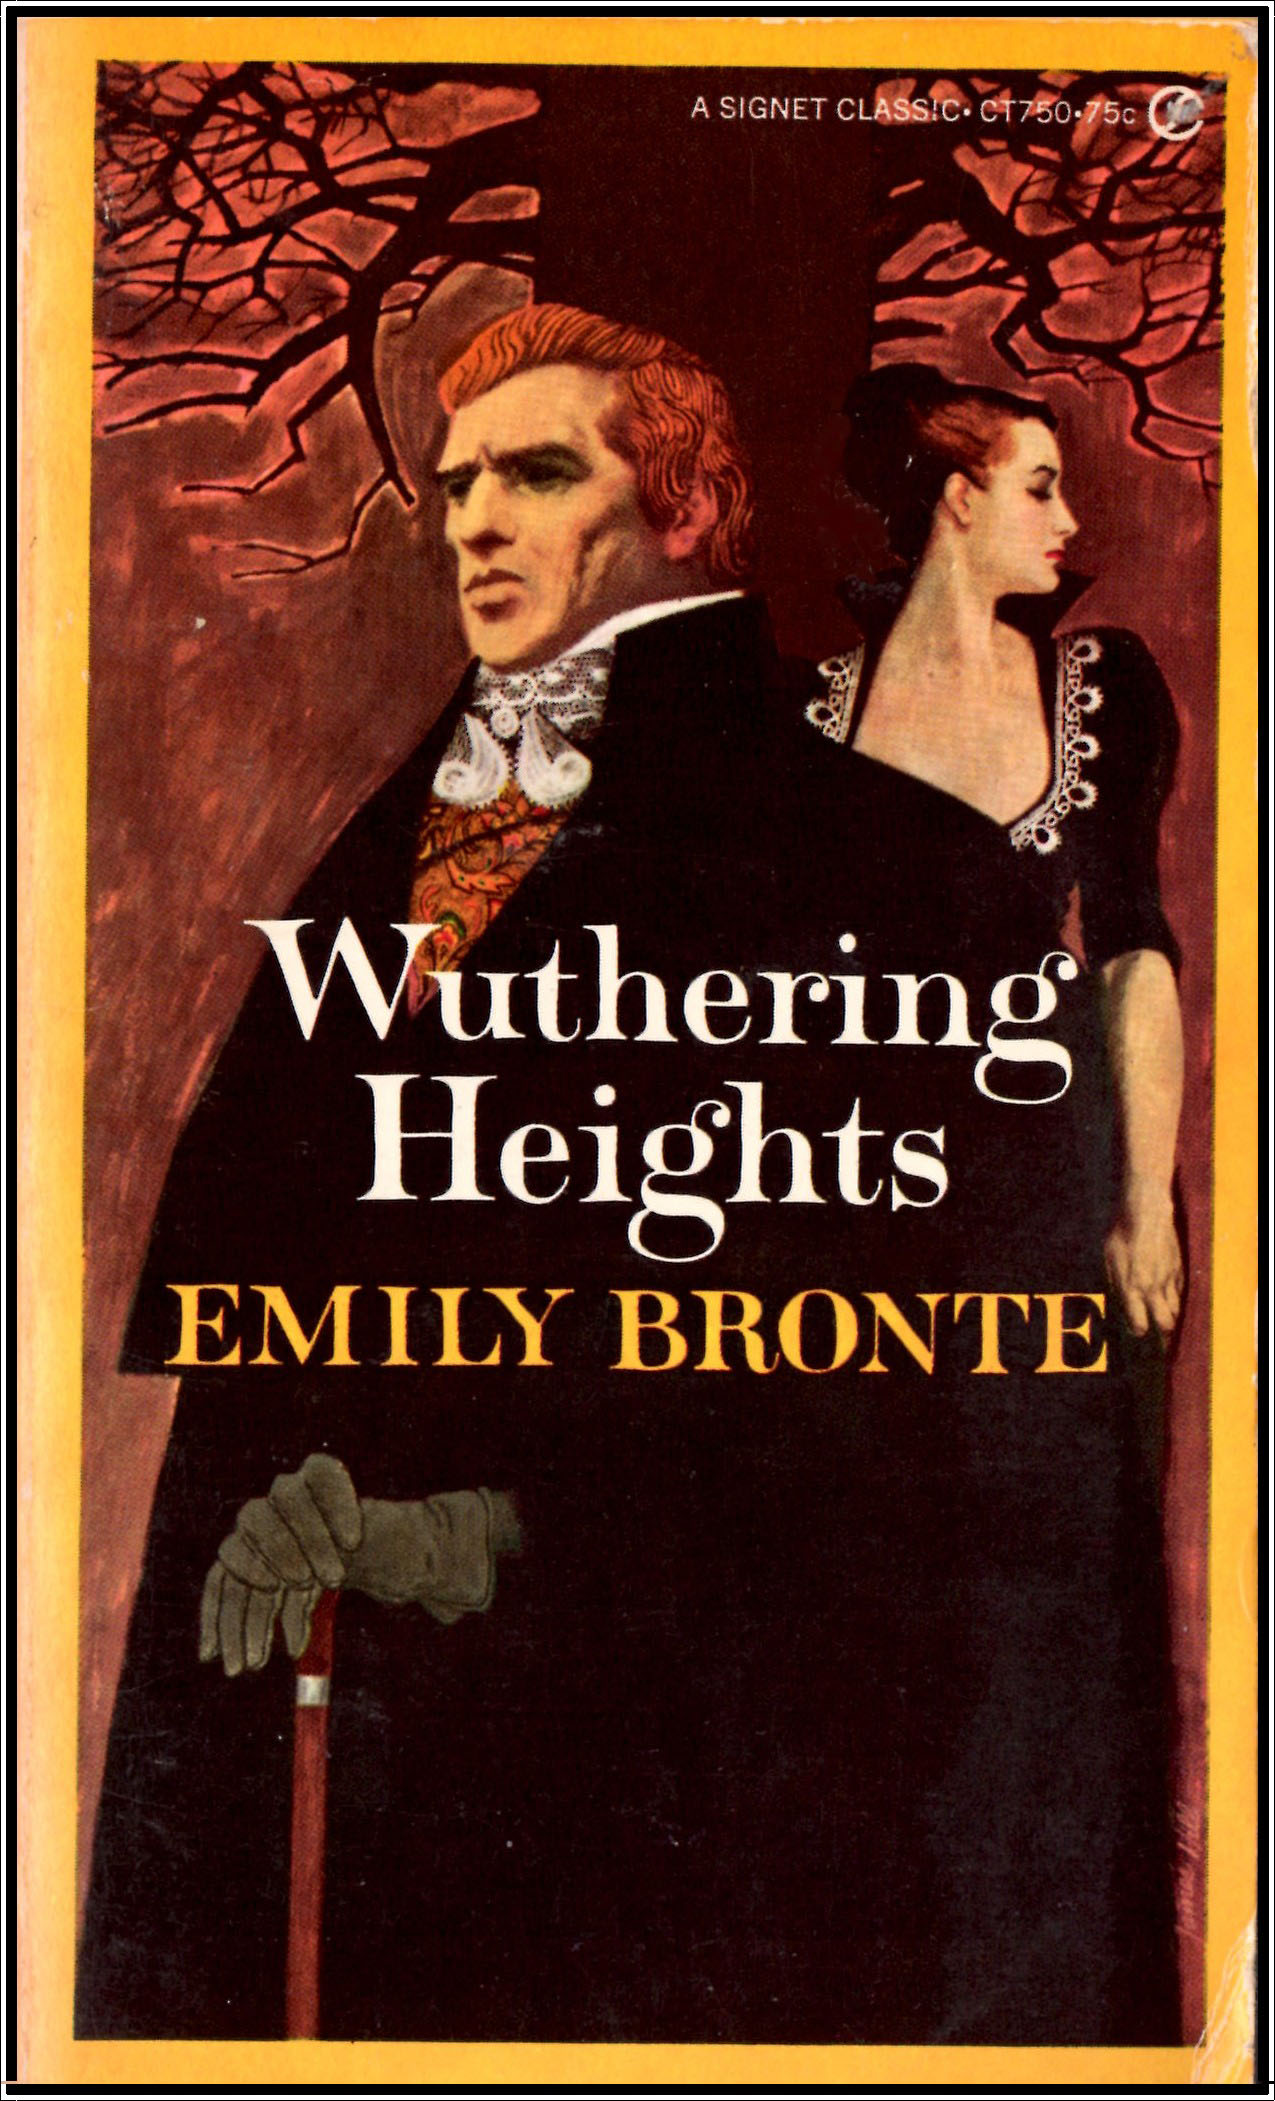 13. Wuthering Heights by Emily Brontë (1847)